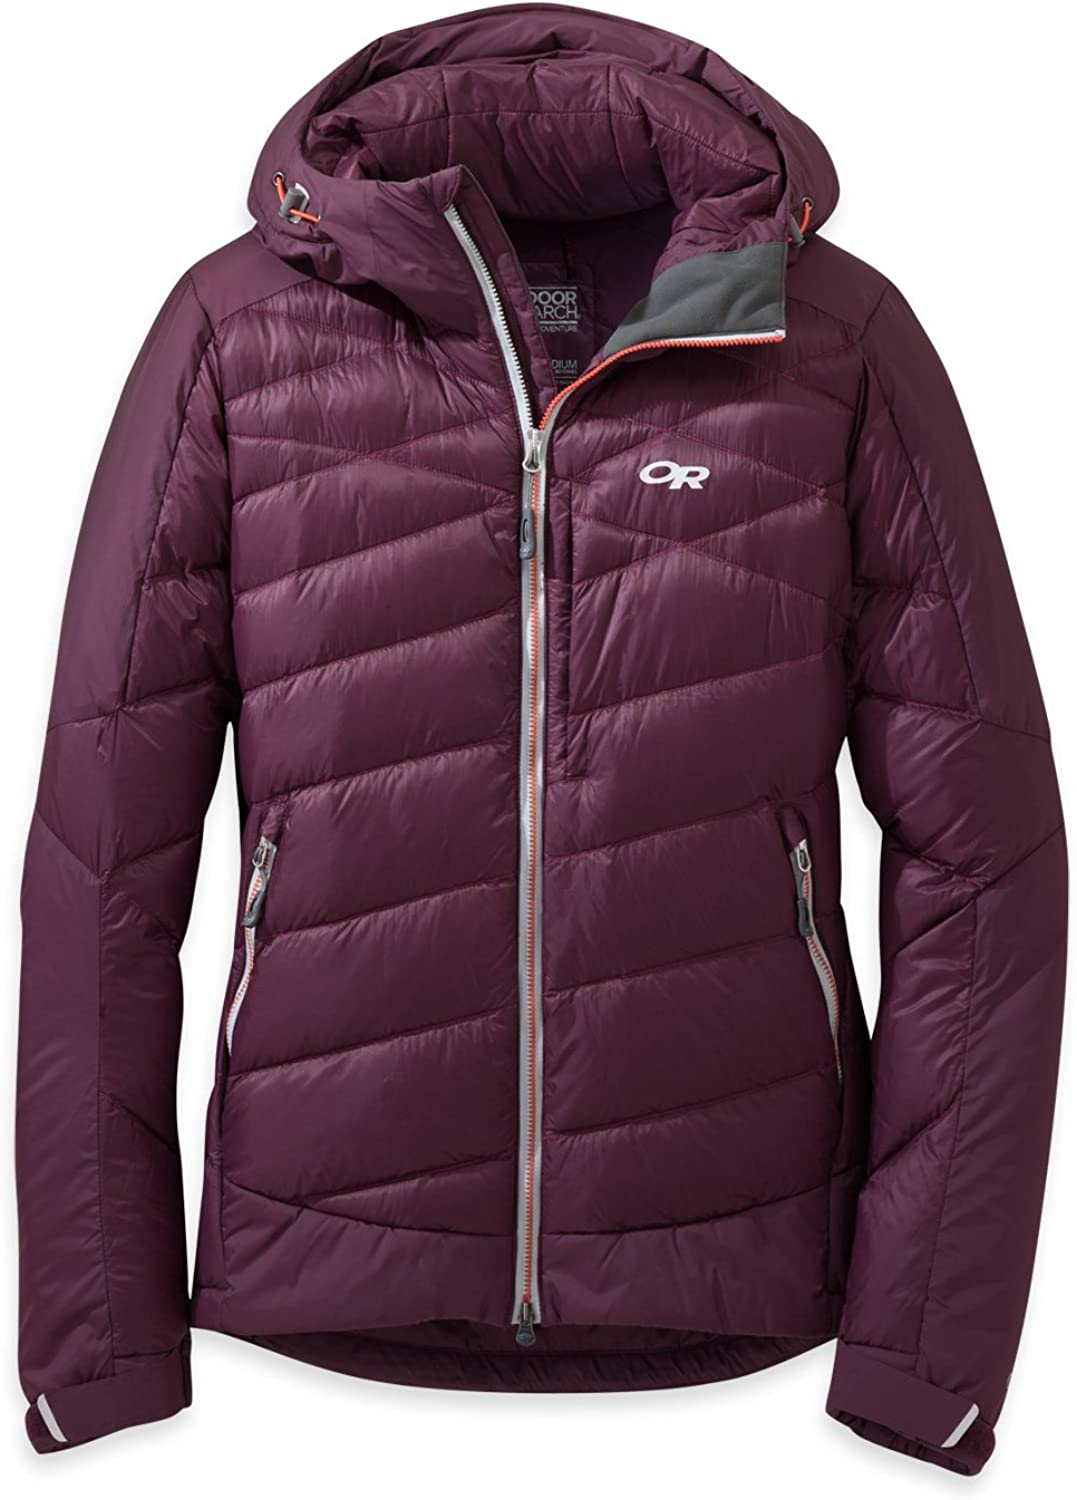 Outdoor Max 59% OFF Research Diode Hooded In a popularity Jacket